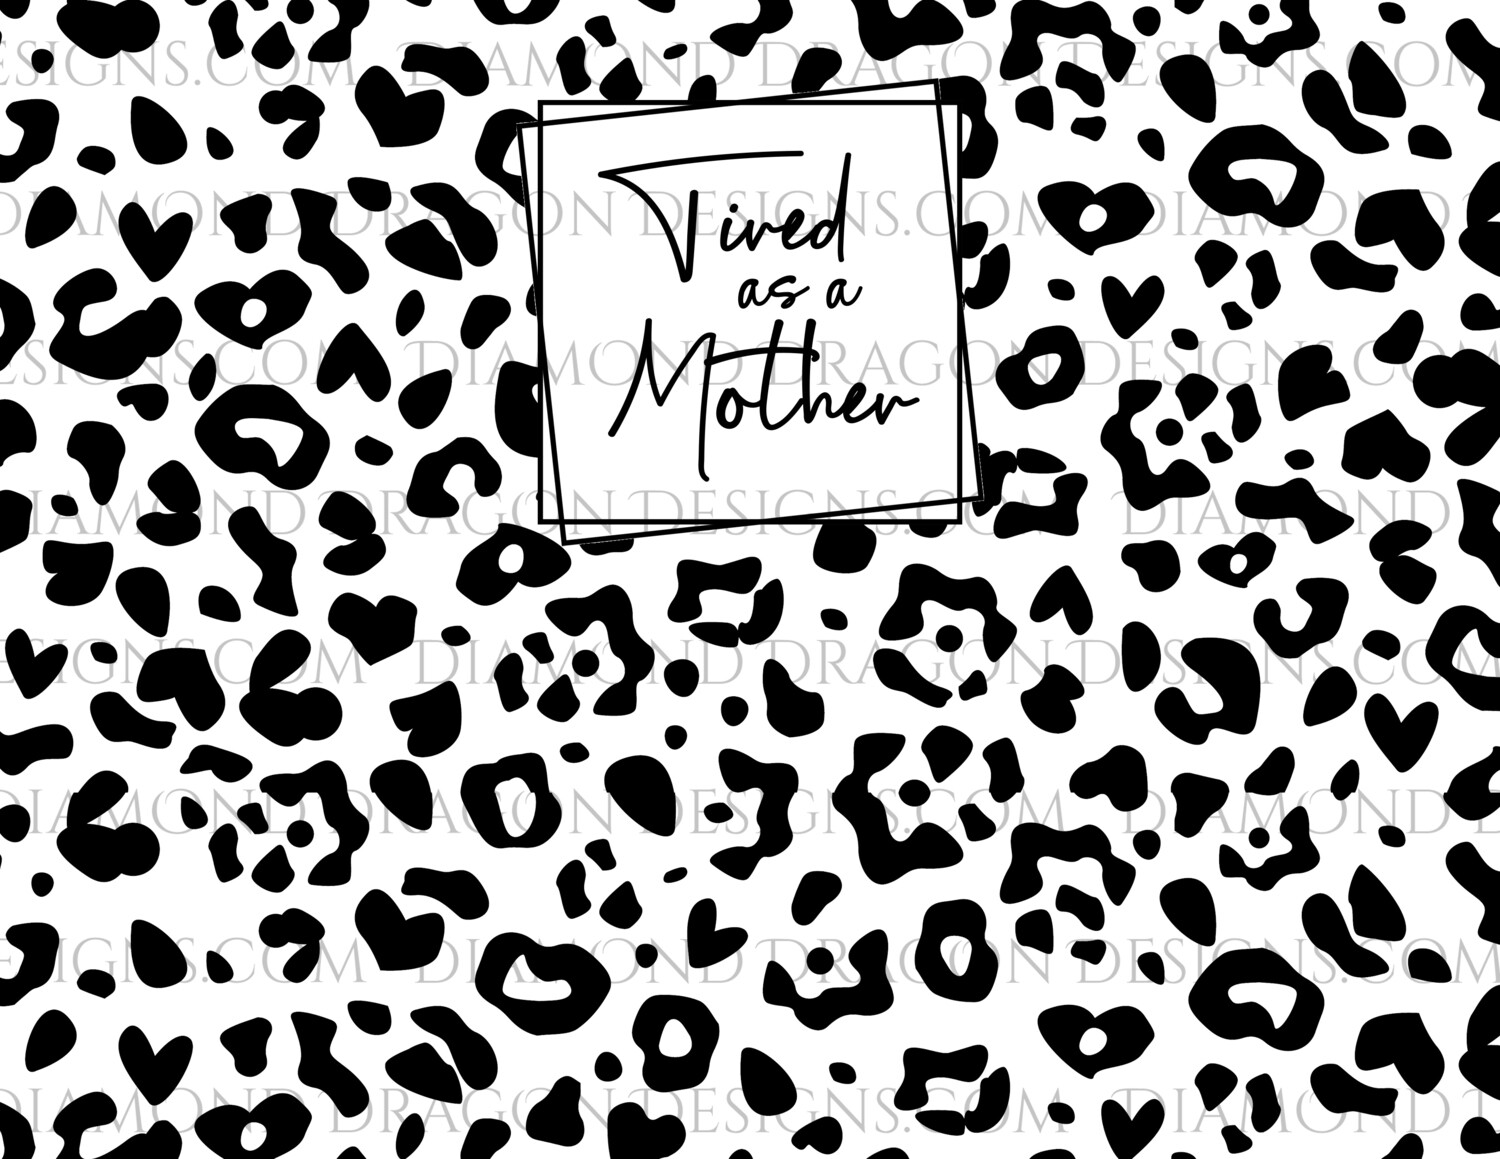 Full Page -  Leopard Print, Tired as a Mother, Full Page Design - Waterslide